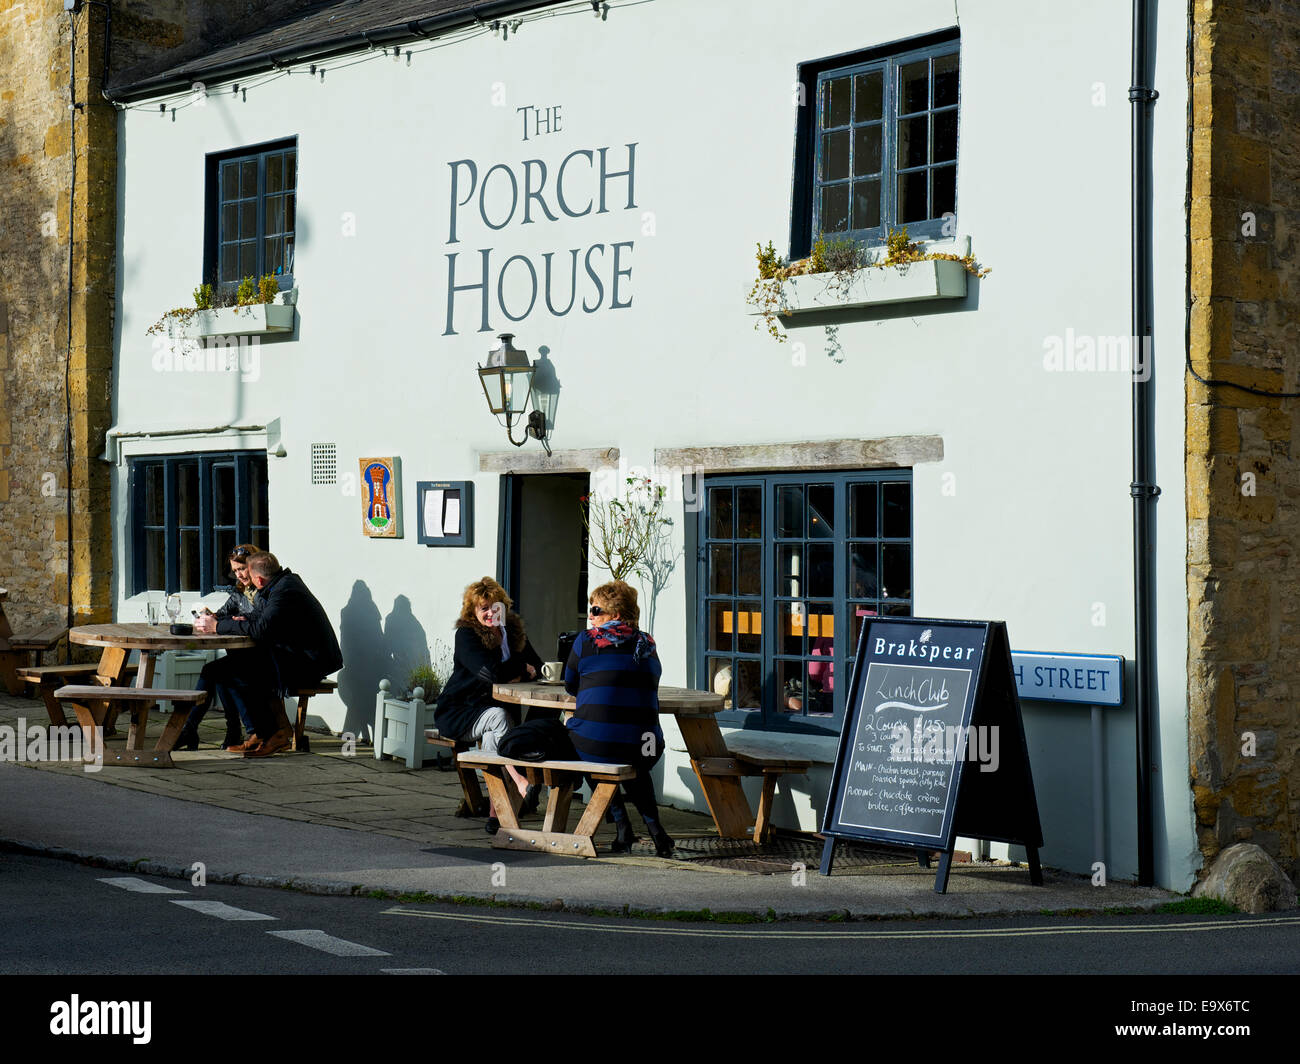 The Porch House, a candidate for being England's oldest pub, Stow-in-the-Wold, Gloucestershire, England UK - Stock Image